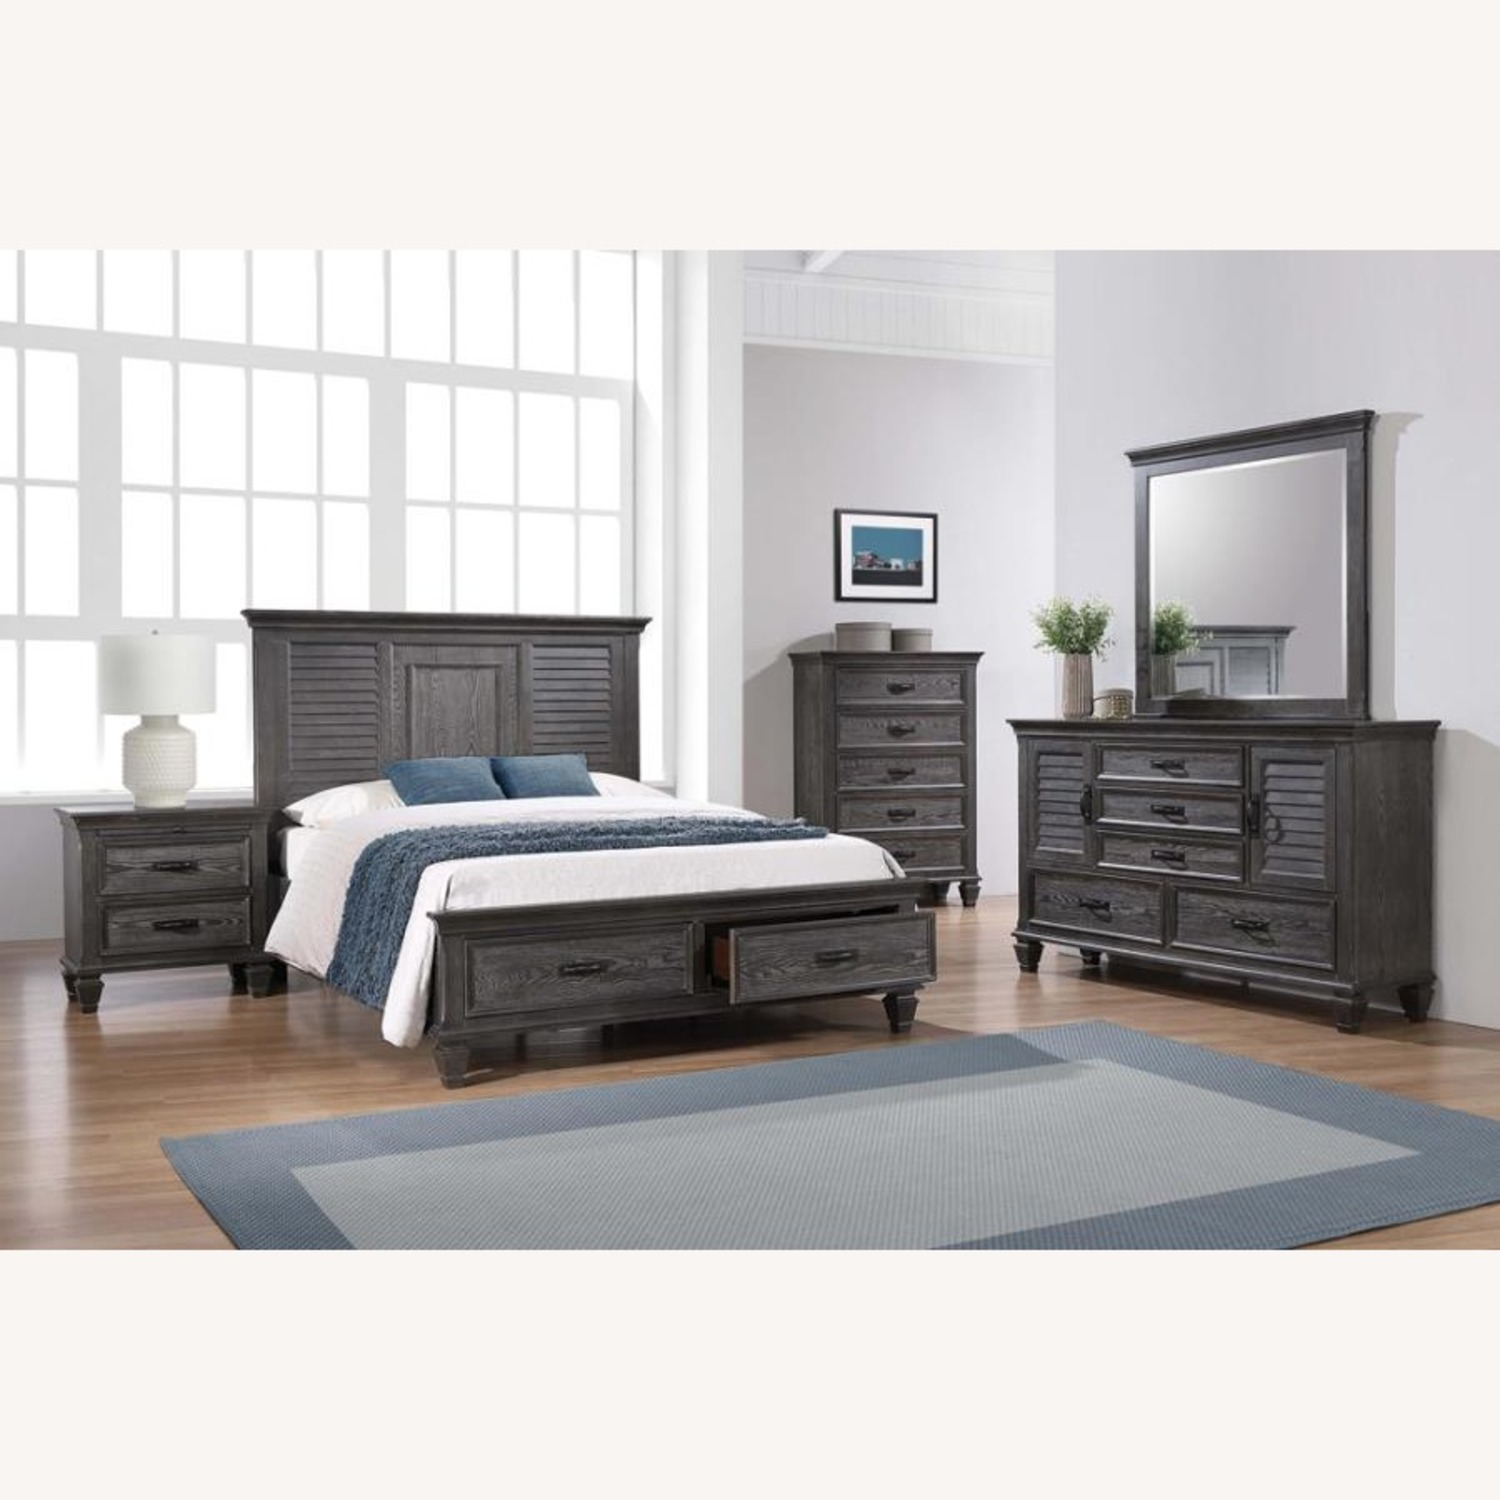 Nightstand In Weathered Sage W/ Charging Space - image-2